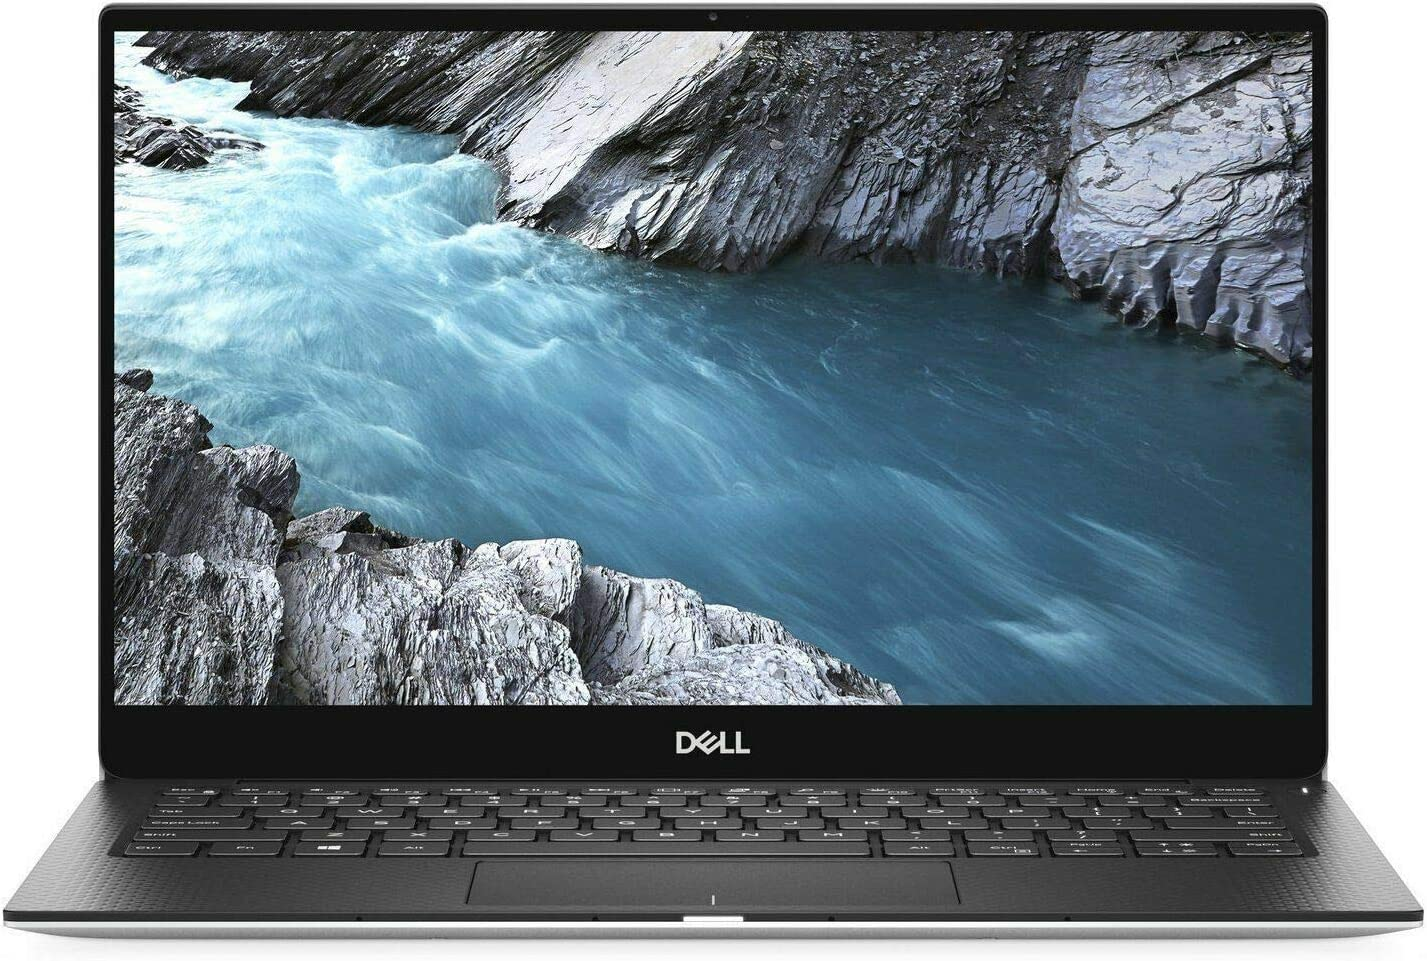 Dell XPS 13 9380 13.3'' FHD 1920x1080 Intel Core i7-8565U 16GB RAM 512GB PCIe SSD W10 PRO with Fingerprint Reader (Renewed)